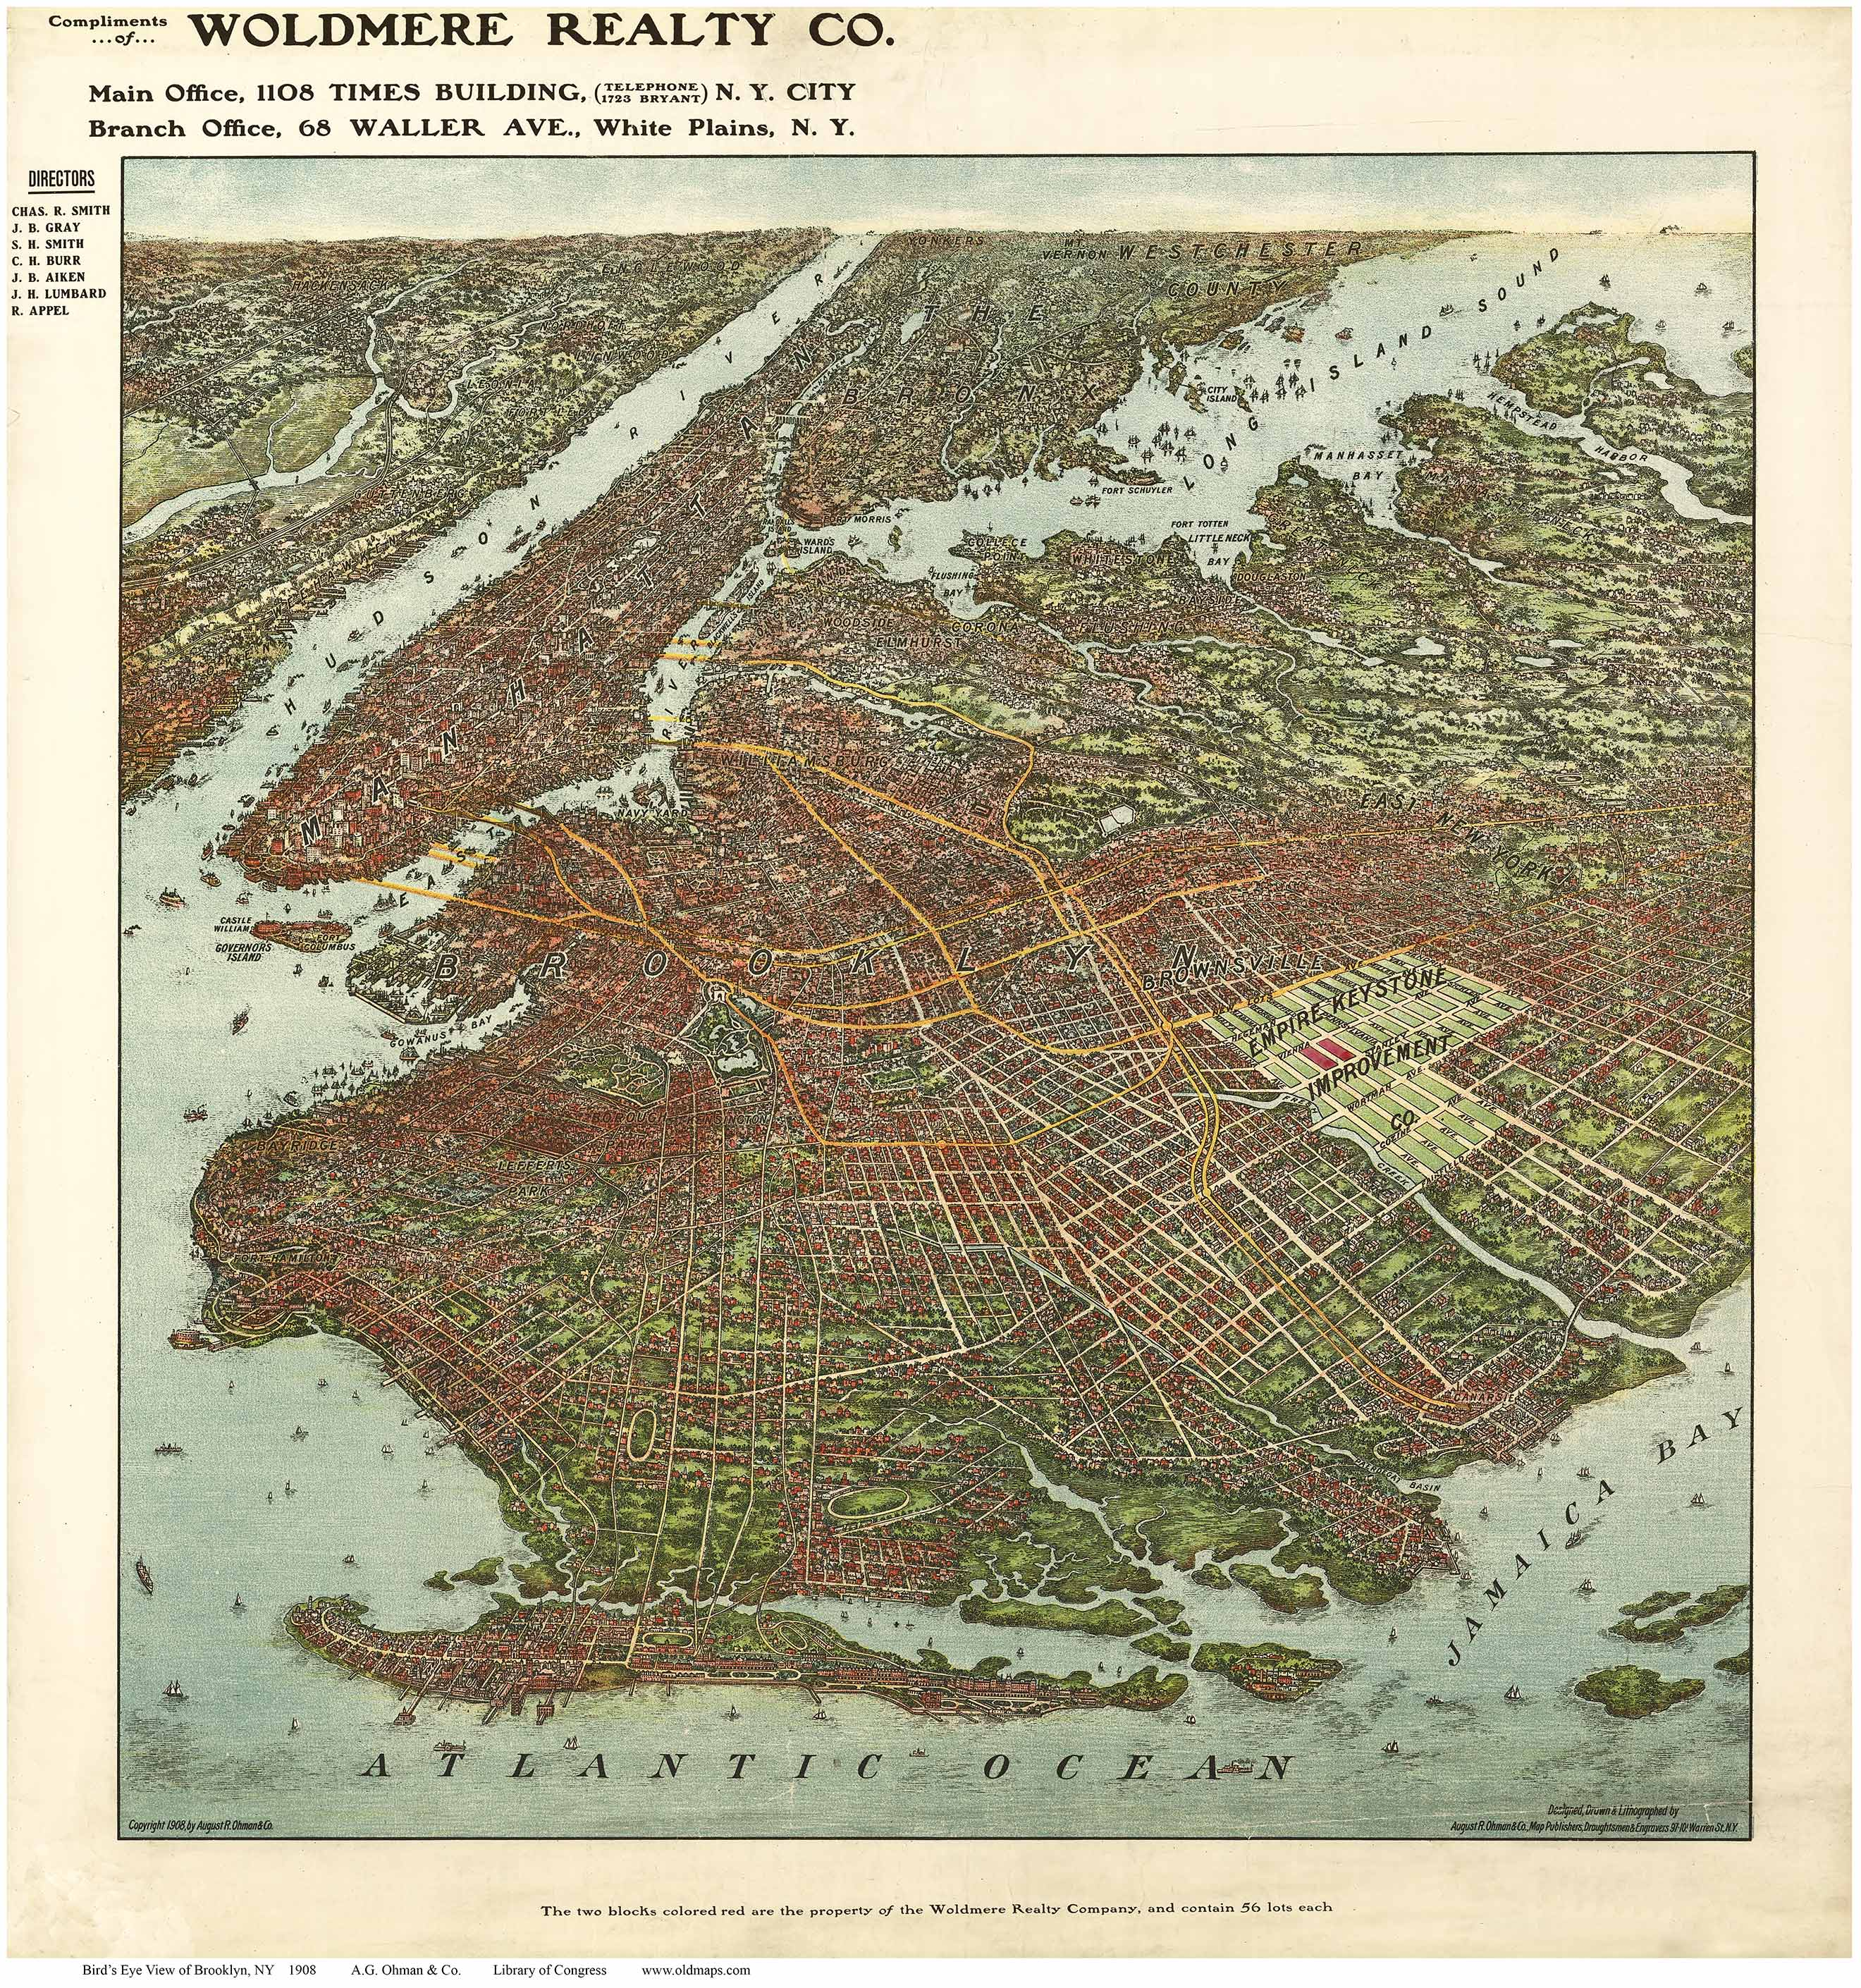 New York 1851 Historic Panoramic Town Map New York City 24x32